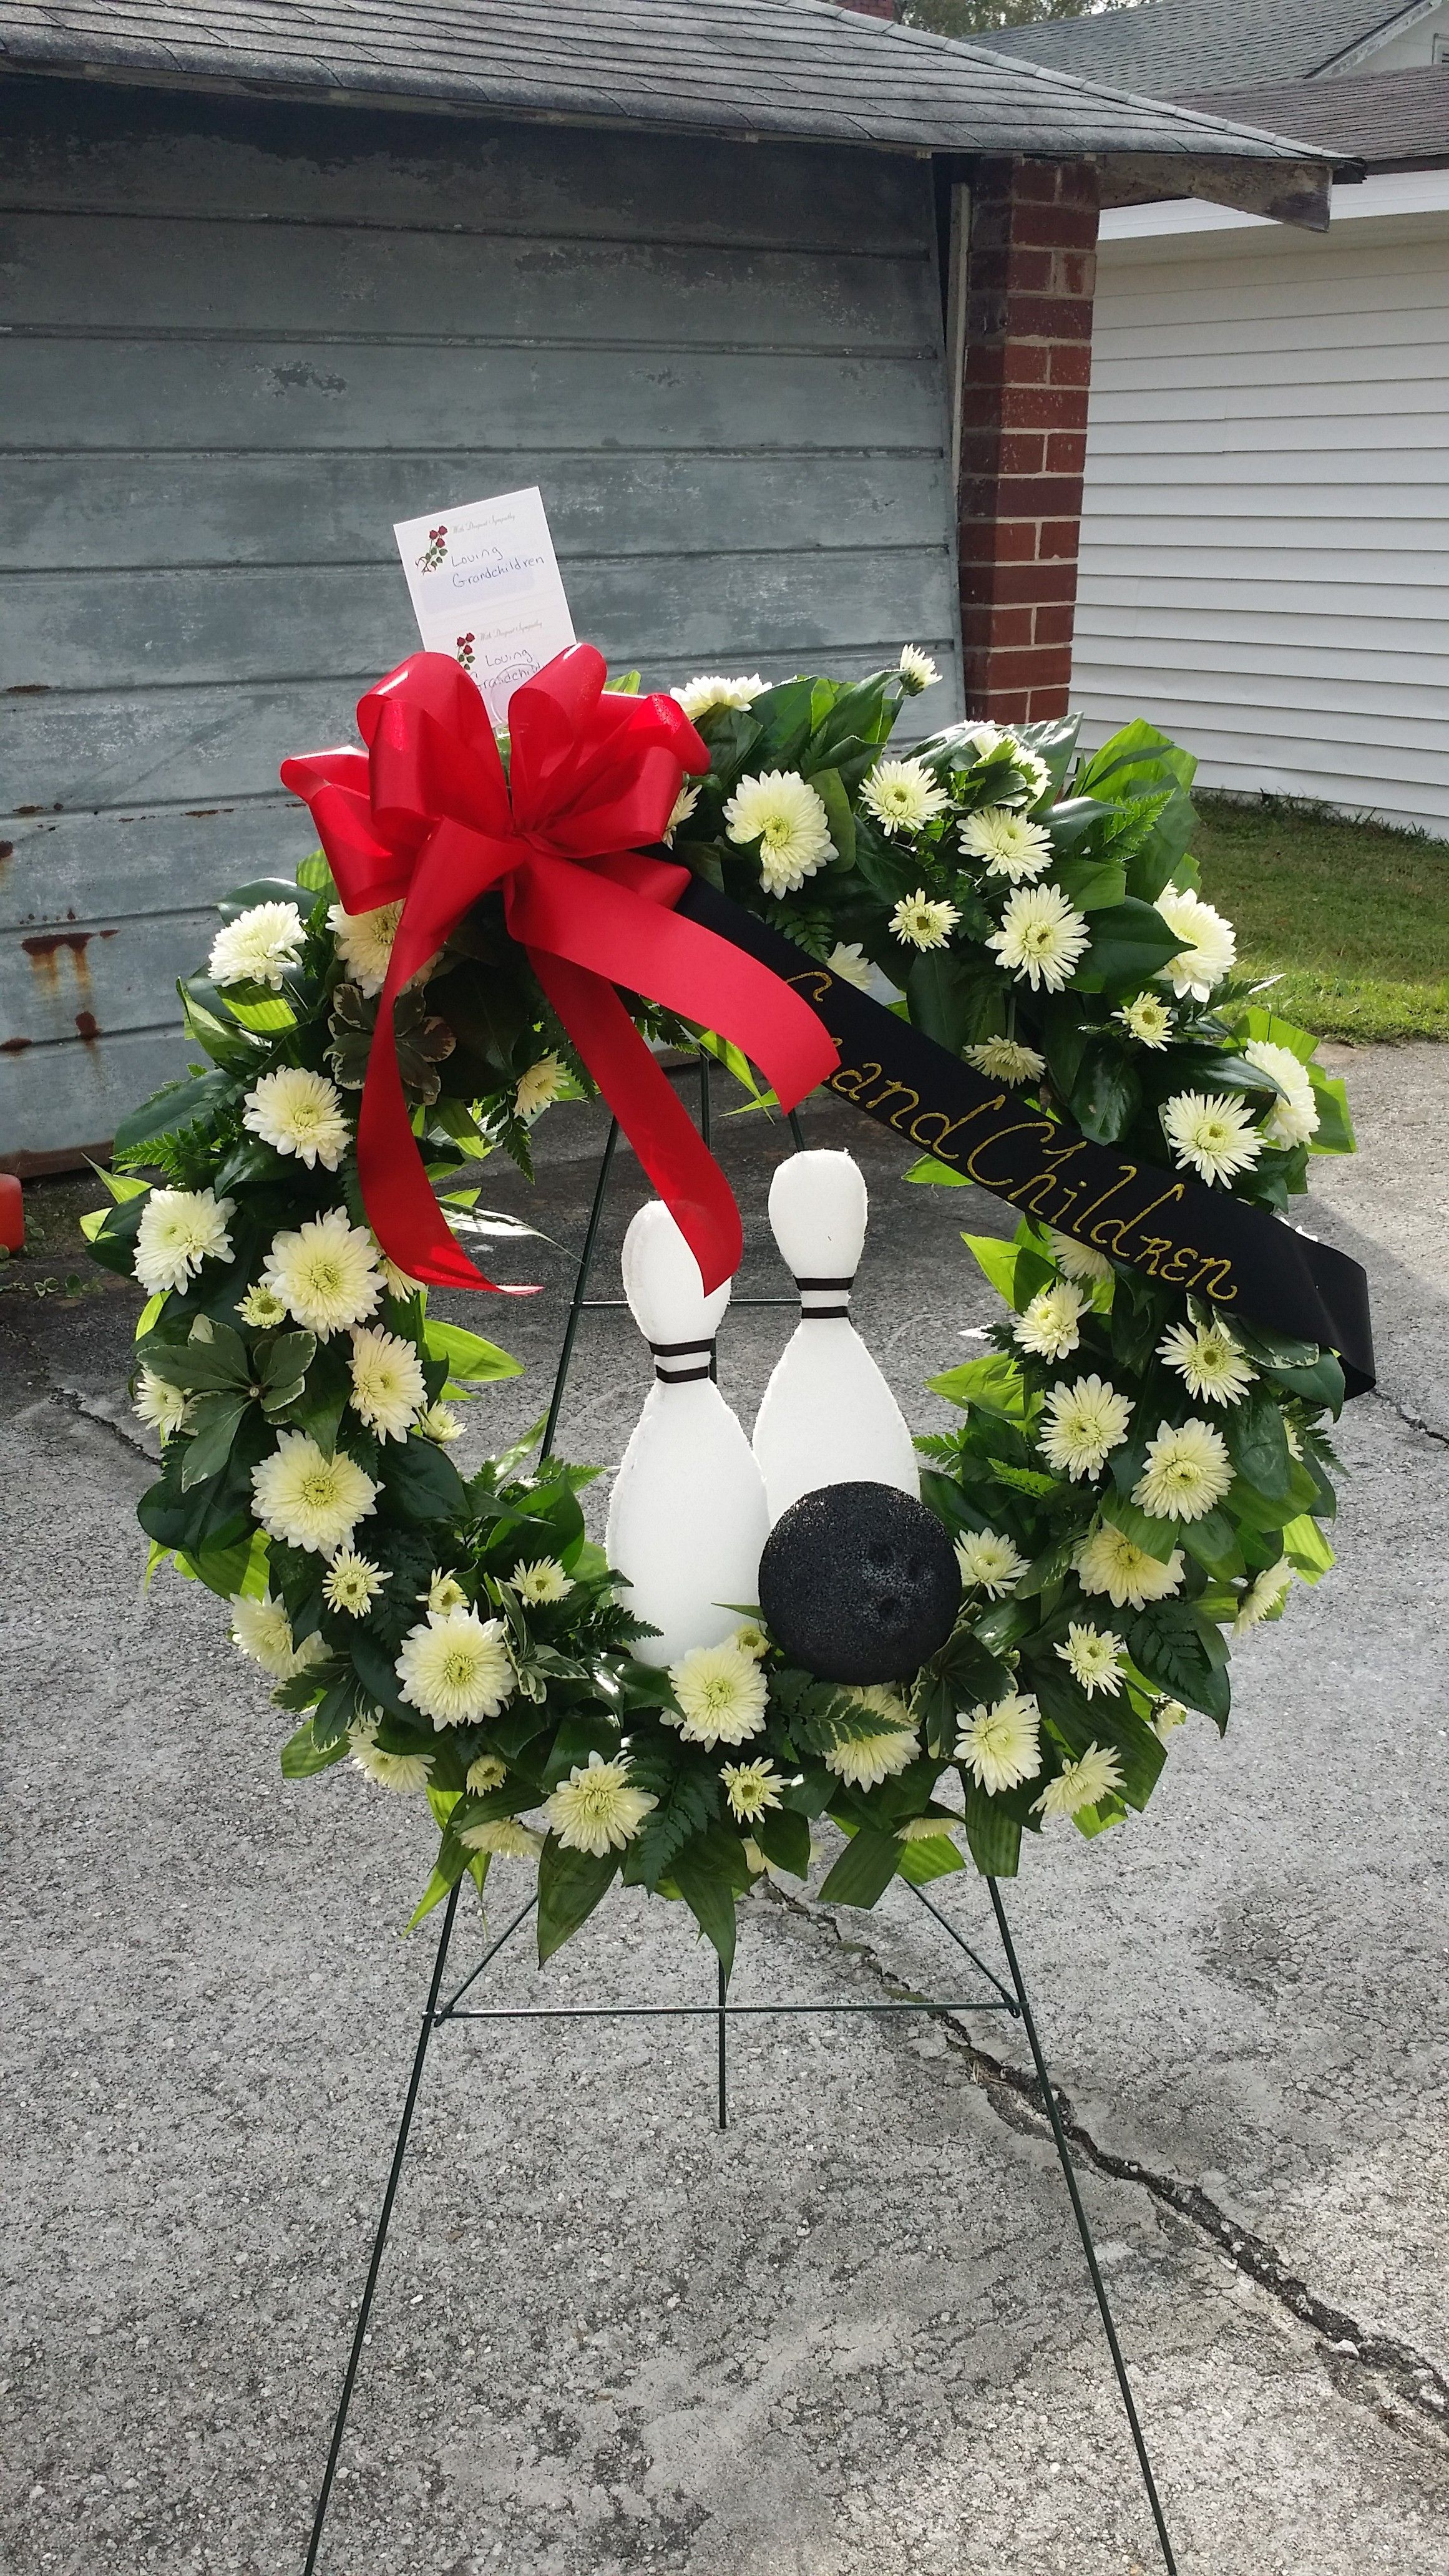 Send the bowling pin wreath bouquet of flowers from annies floral send the bowling pin wreath bouquet of flowers from annies floral boutique in augusta ga izmirmasajfo Image collections